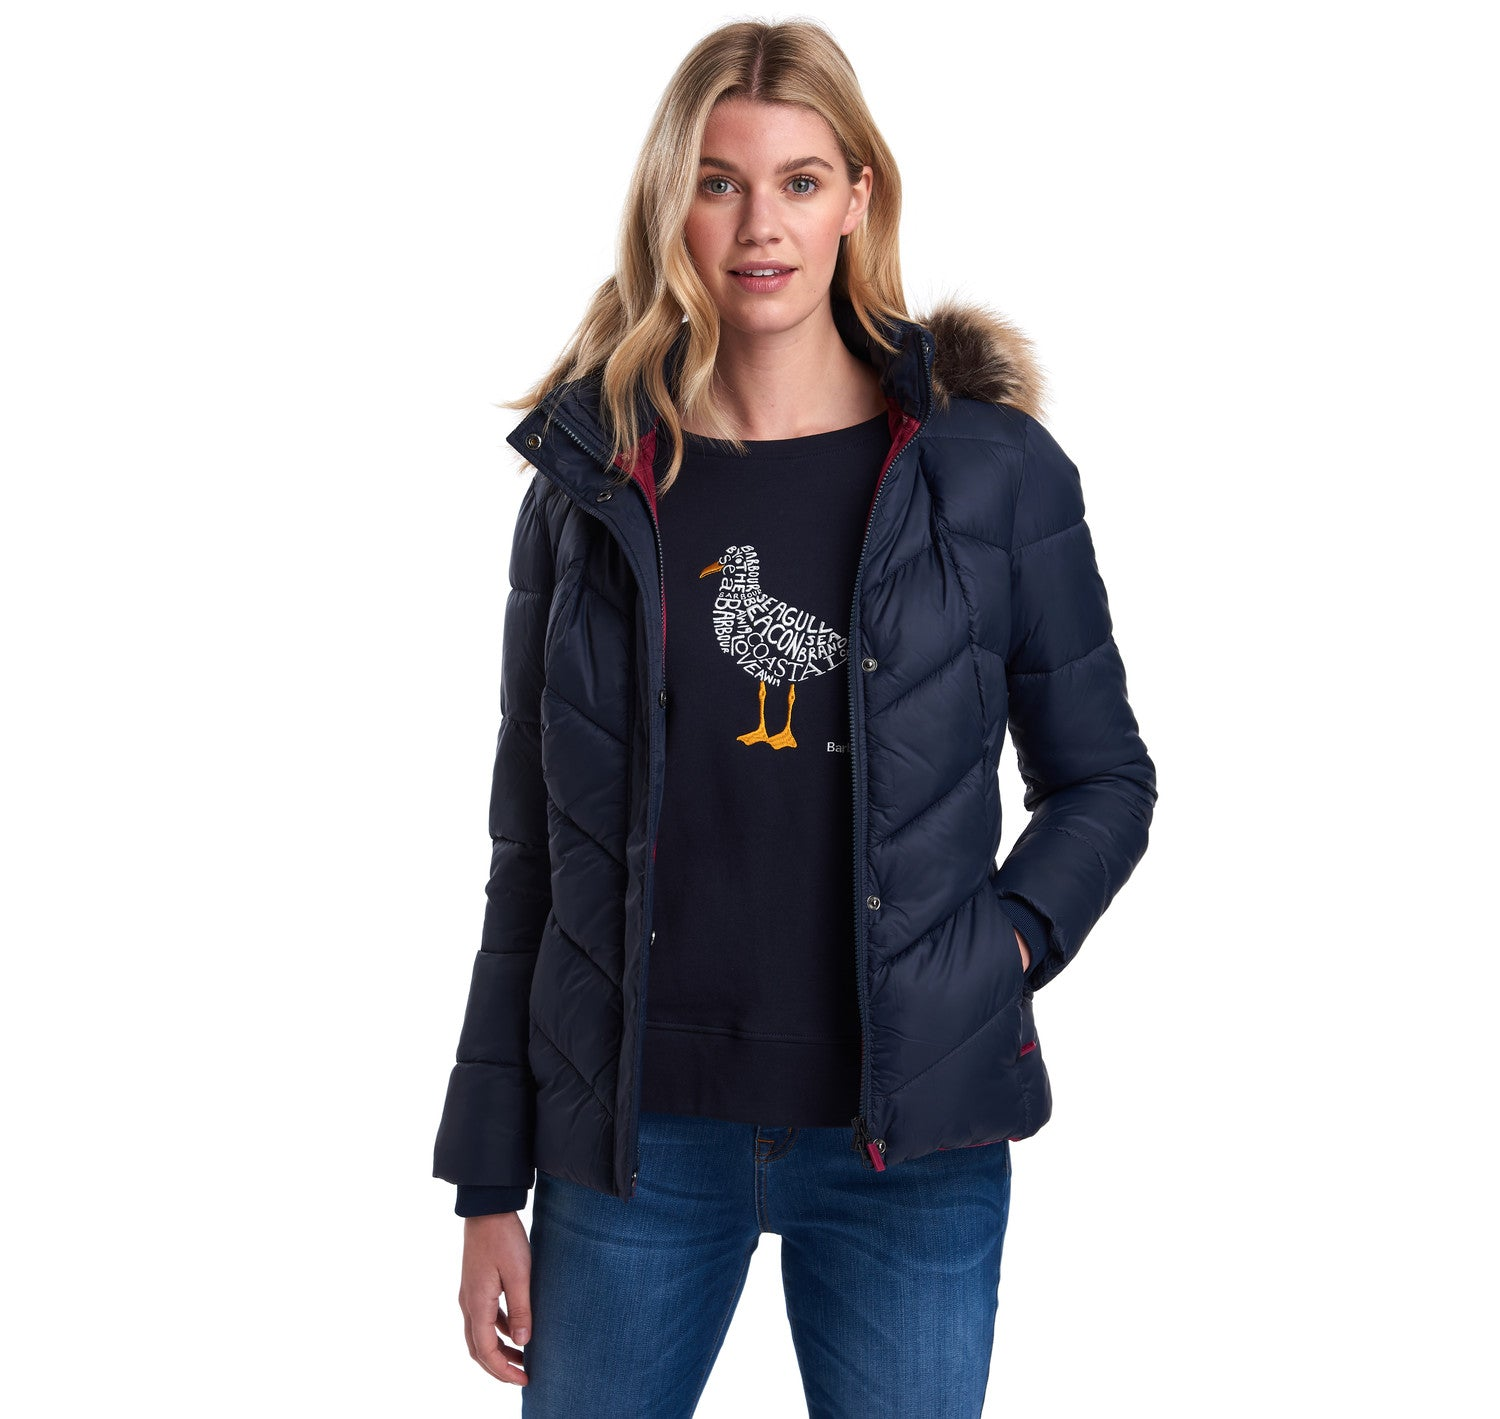 Barbour Downhall Quilted Jacket for Ladies in Navy